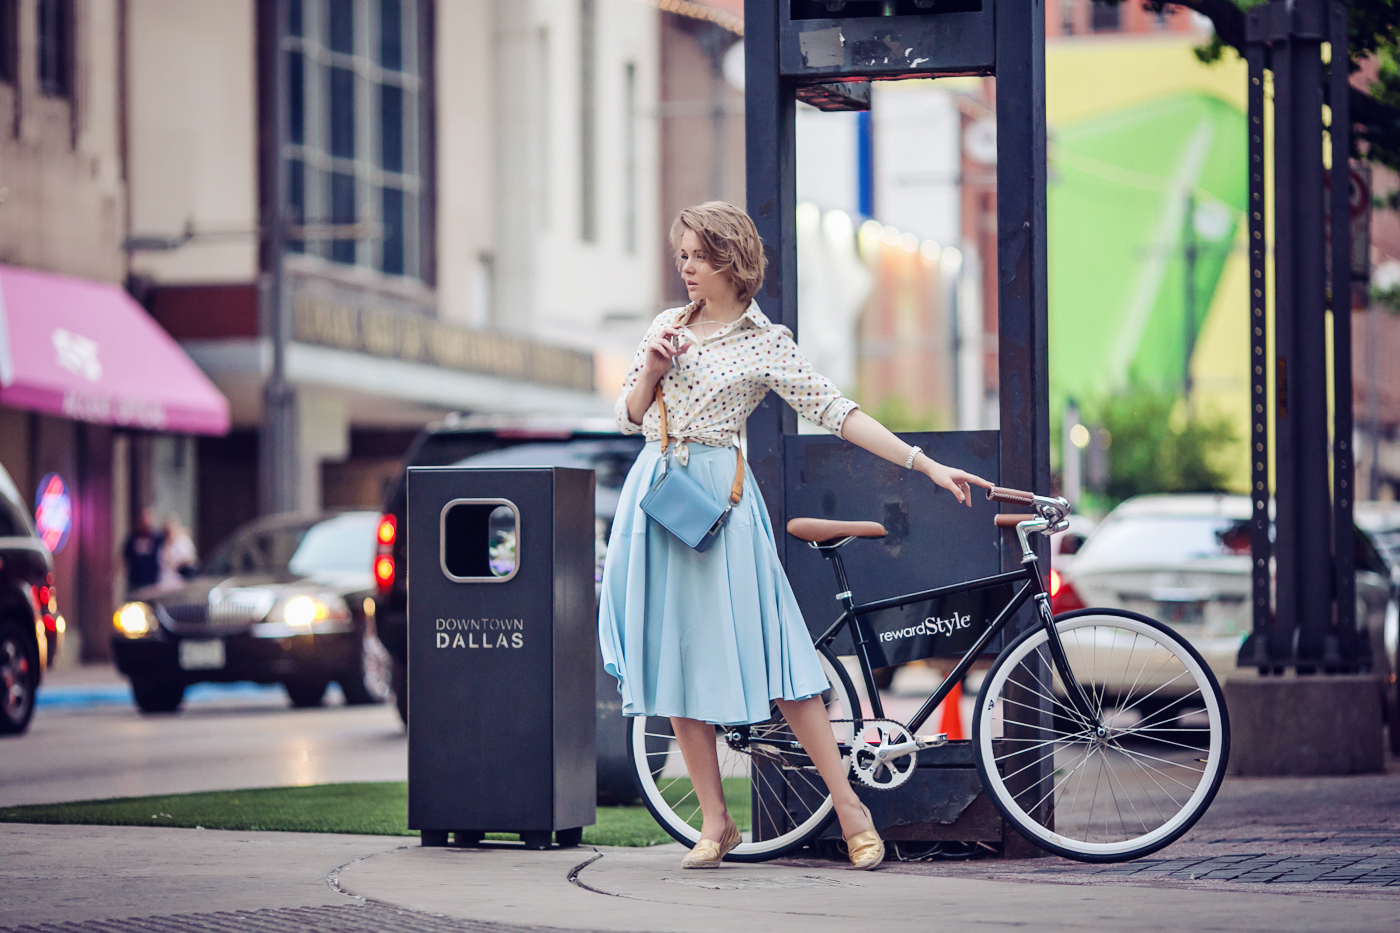 darya kamalova a fashion blogger from thecablook in dallas texas on the bycicle in polka dot shirt and blue skirt with gold espadrilles and other storie bag for rewardstyle rsthecon-18 copy